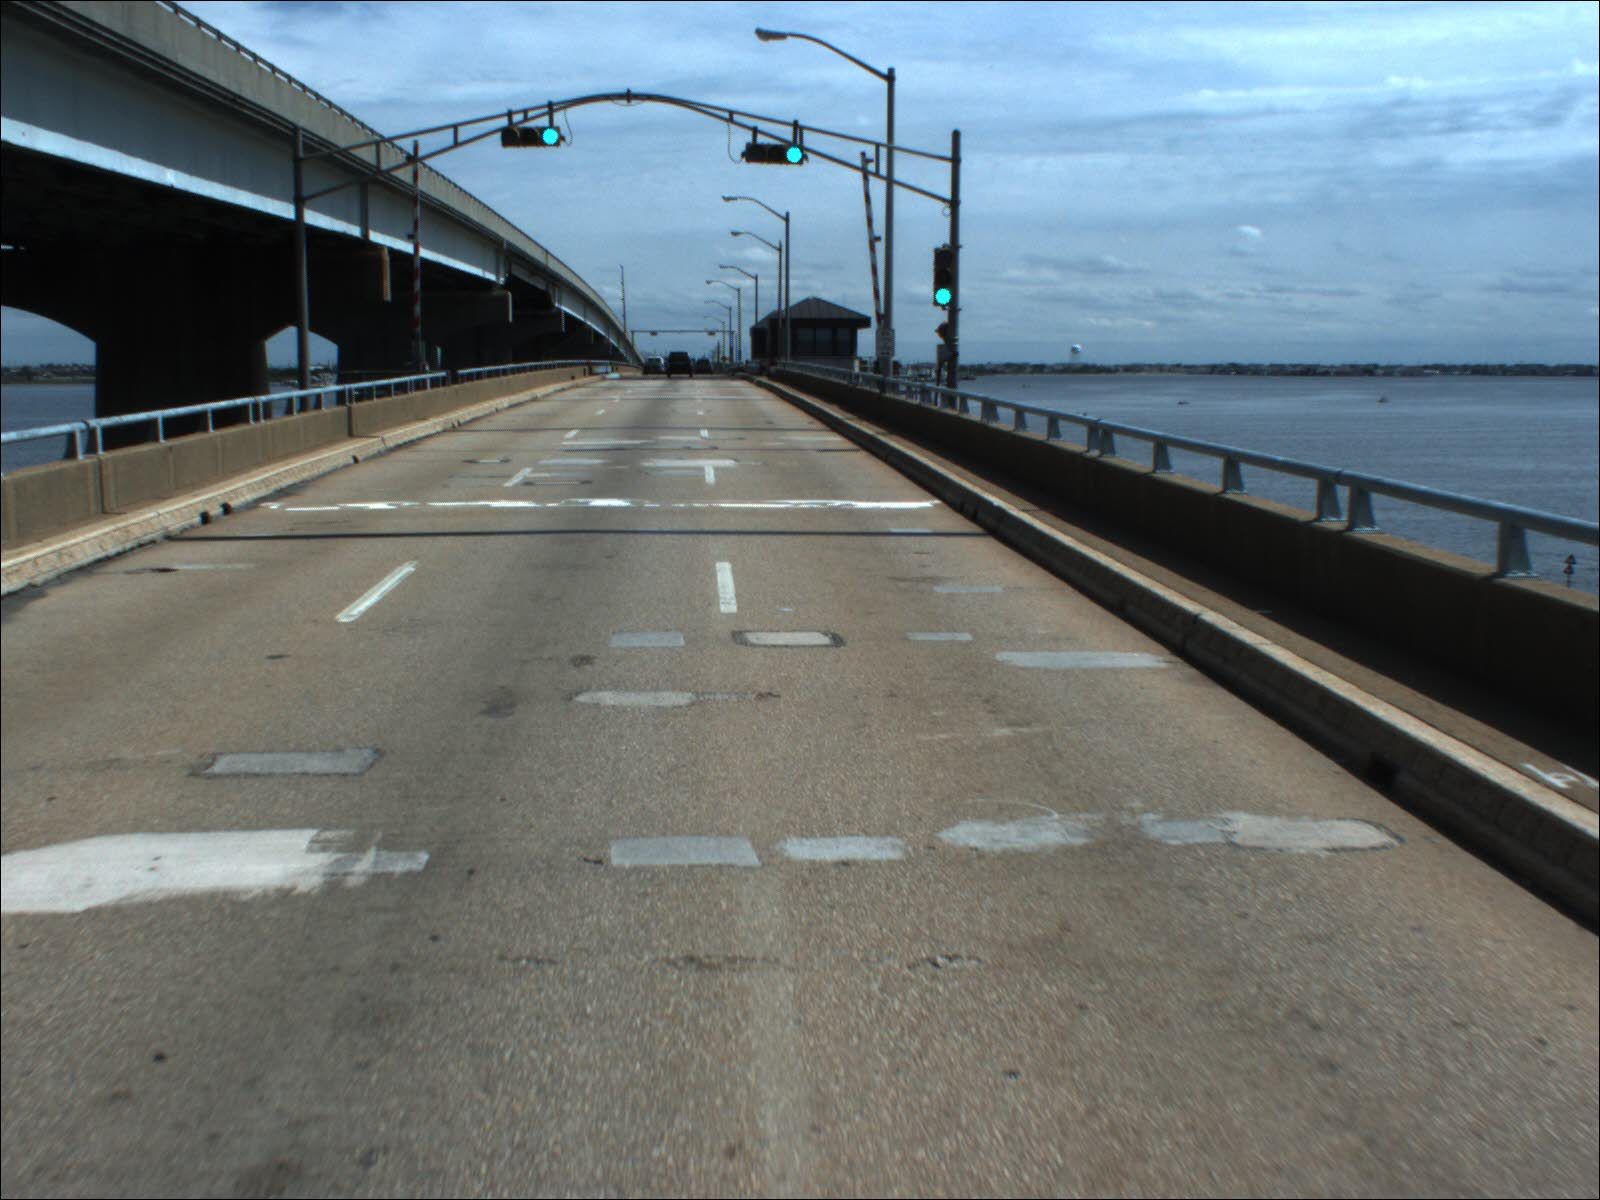 Route 37 lane closures announced on bridges over Barnegat Bay